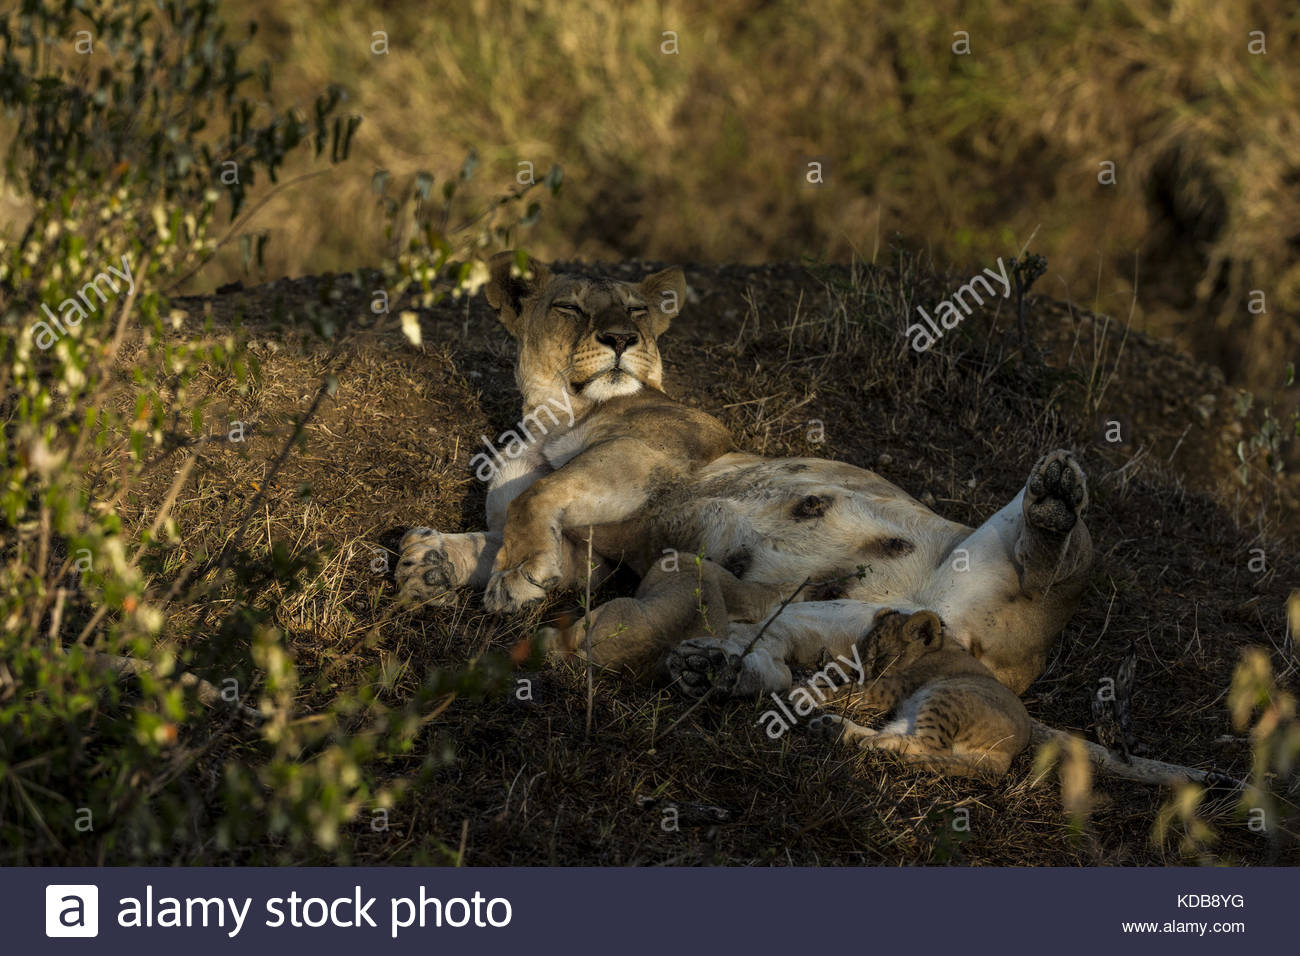 A lioness, Panthera leo, rests after suckling her now sleeping cub. - Stock Image